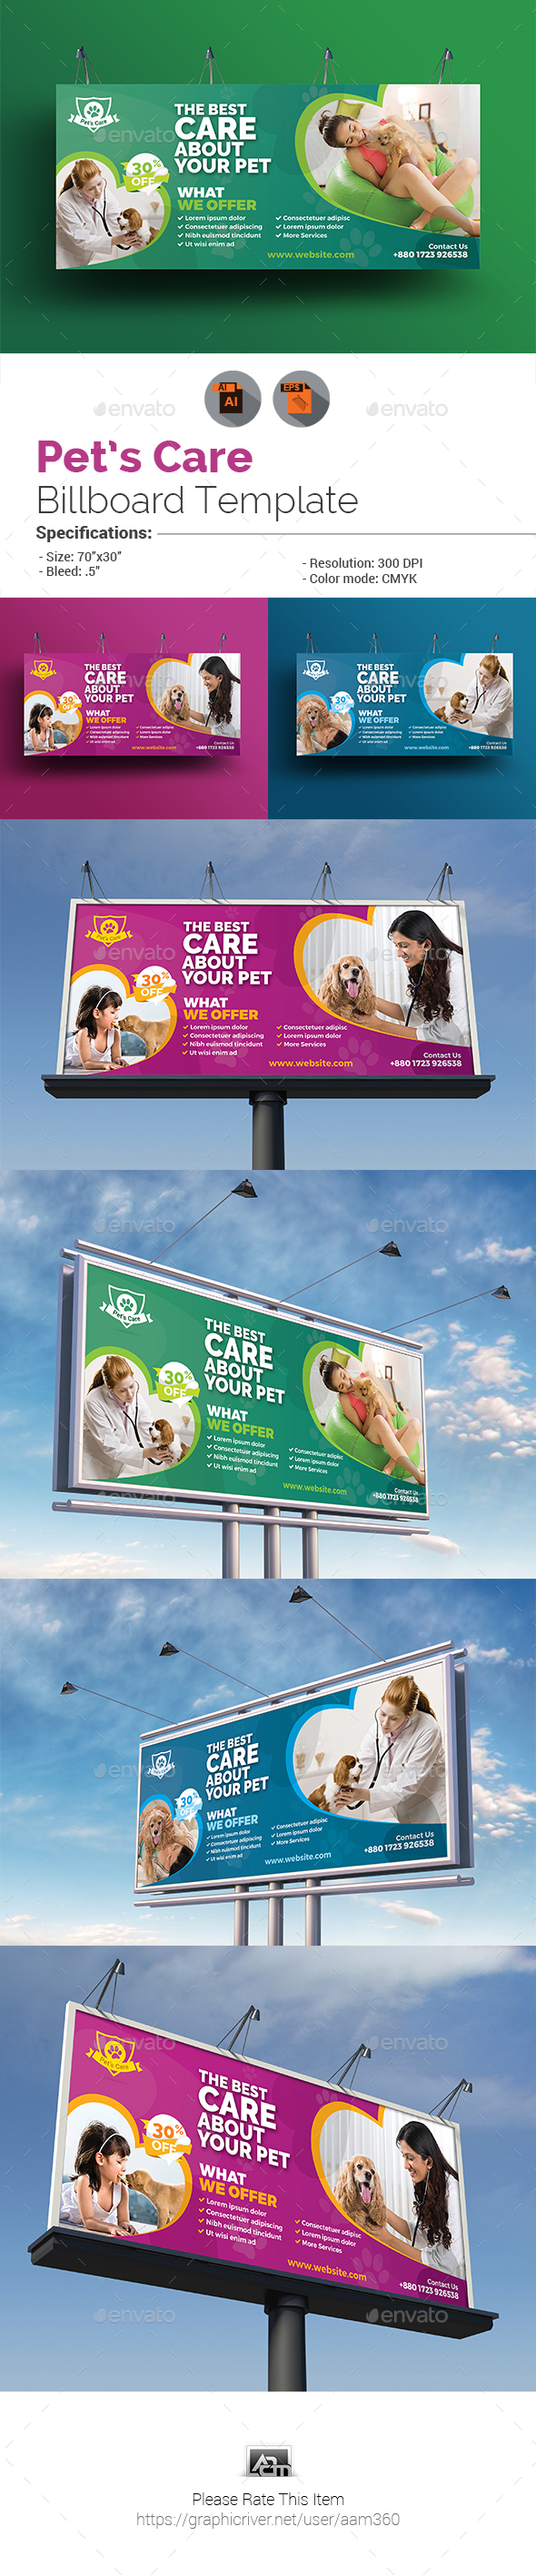 Pets Care Billboard Template - Signage Print Templates